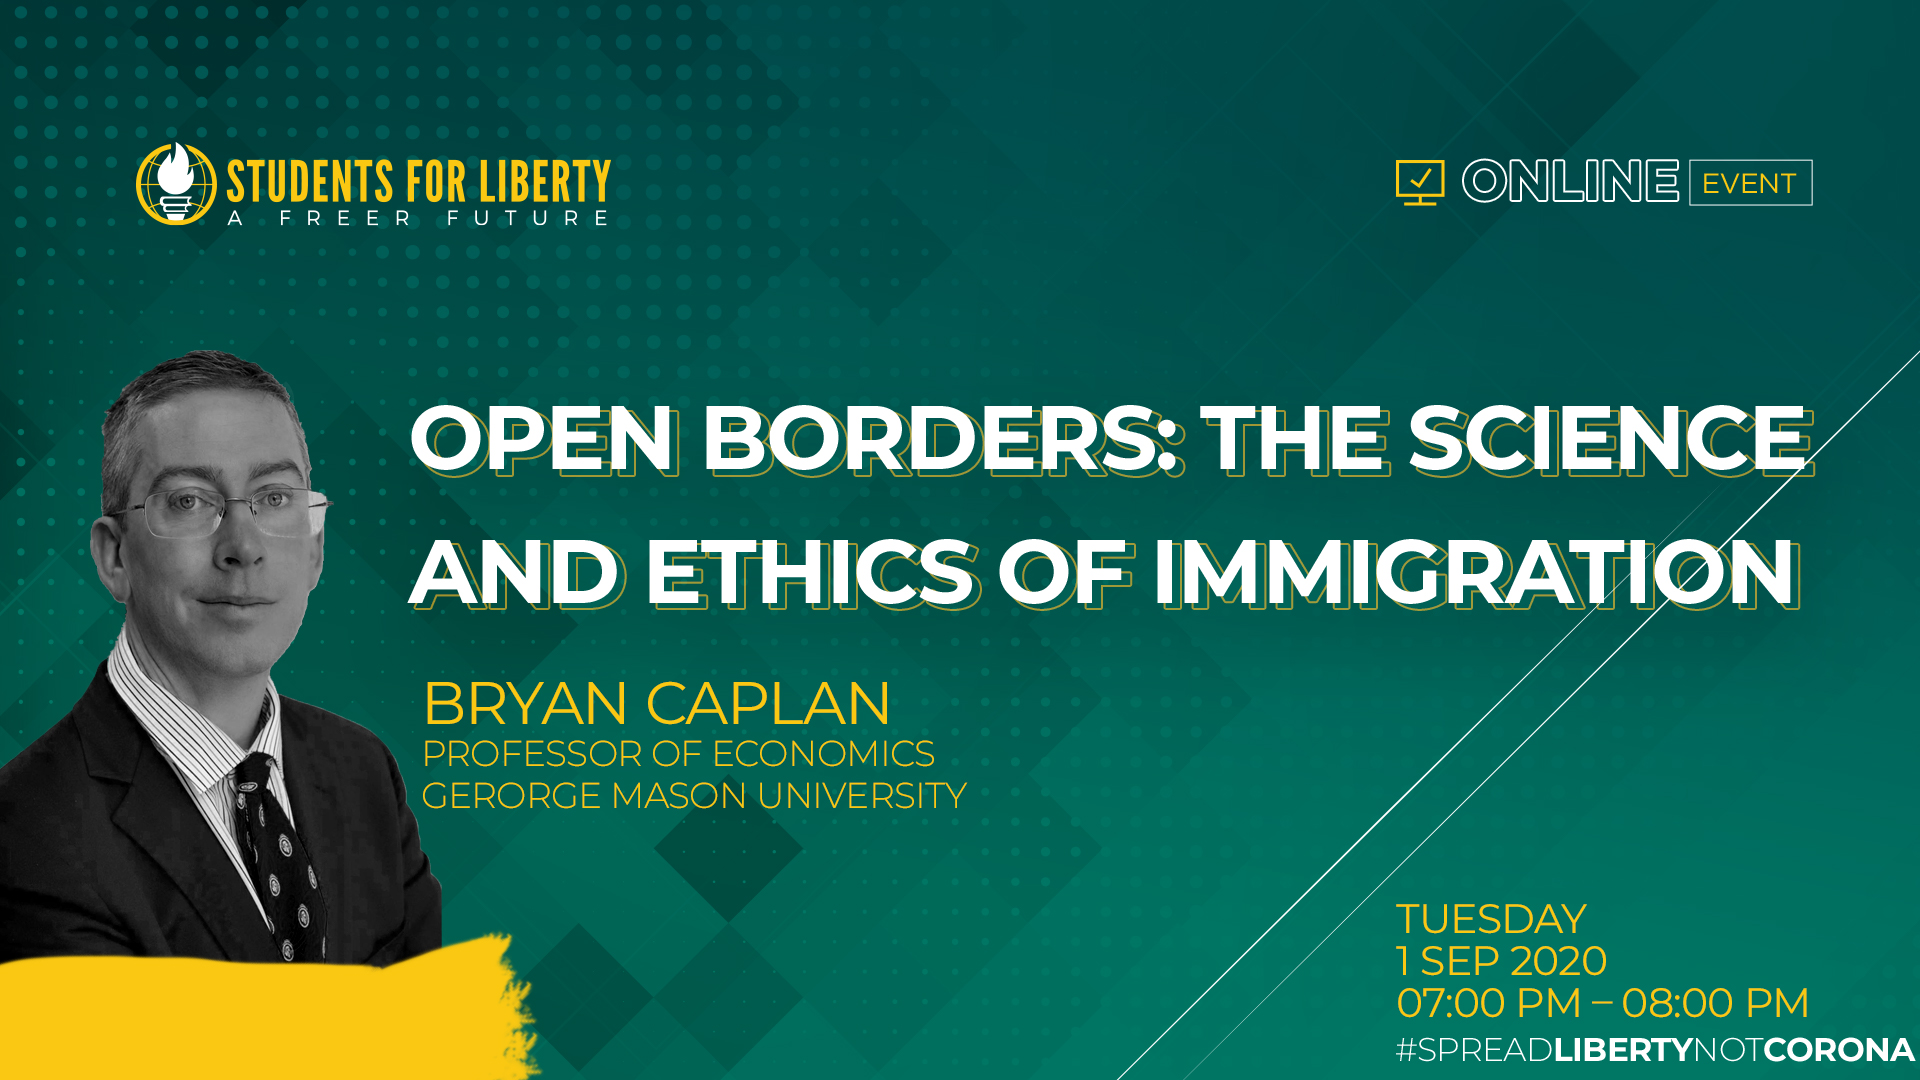 SASFL Webinar on Open Borders: The Science and Ethics of Immigration